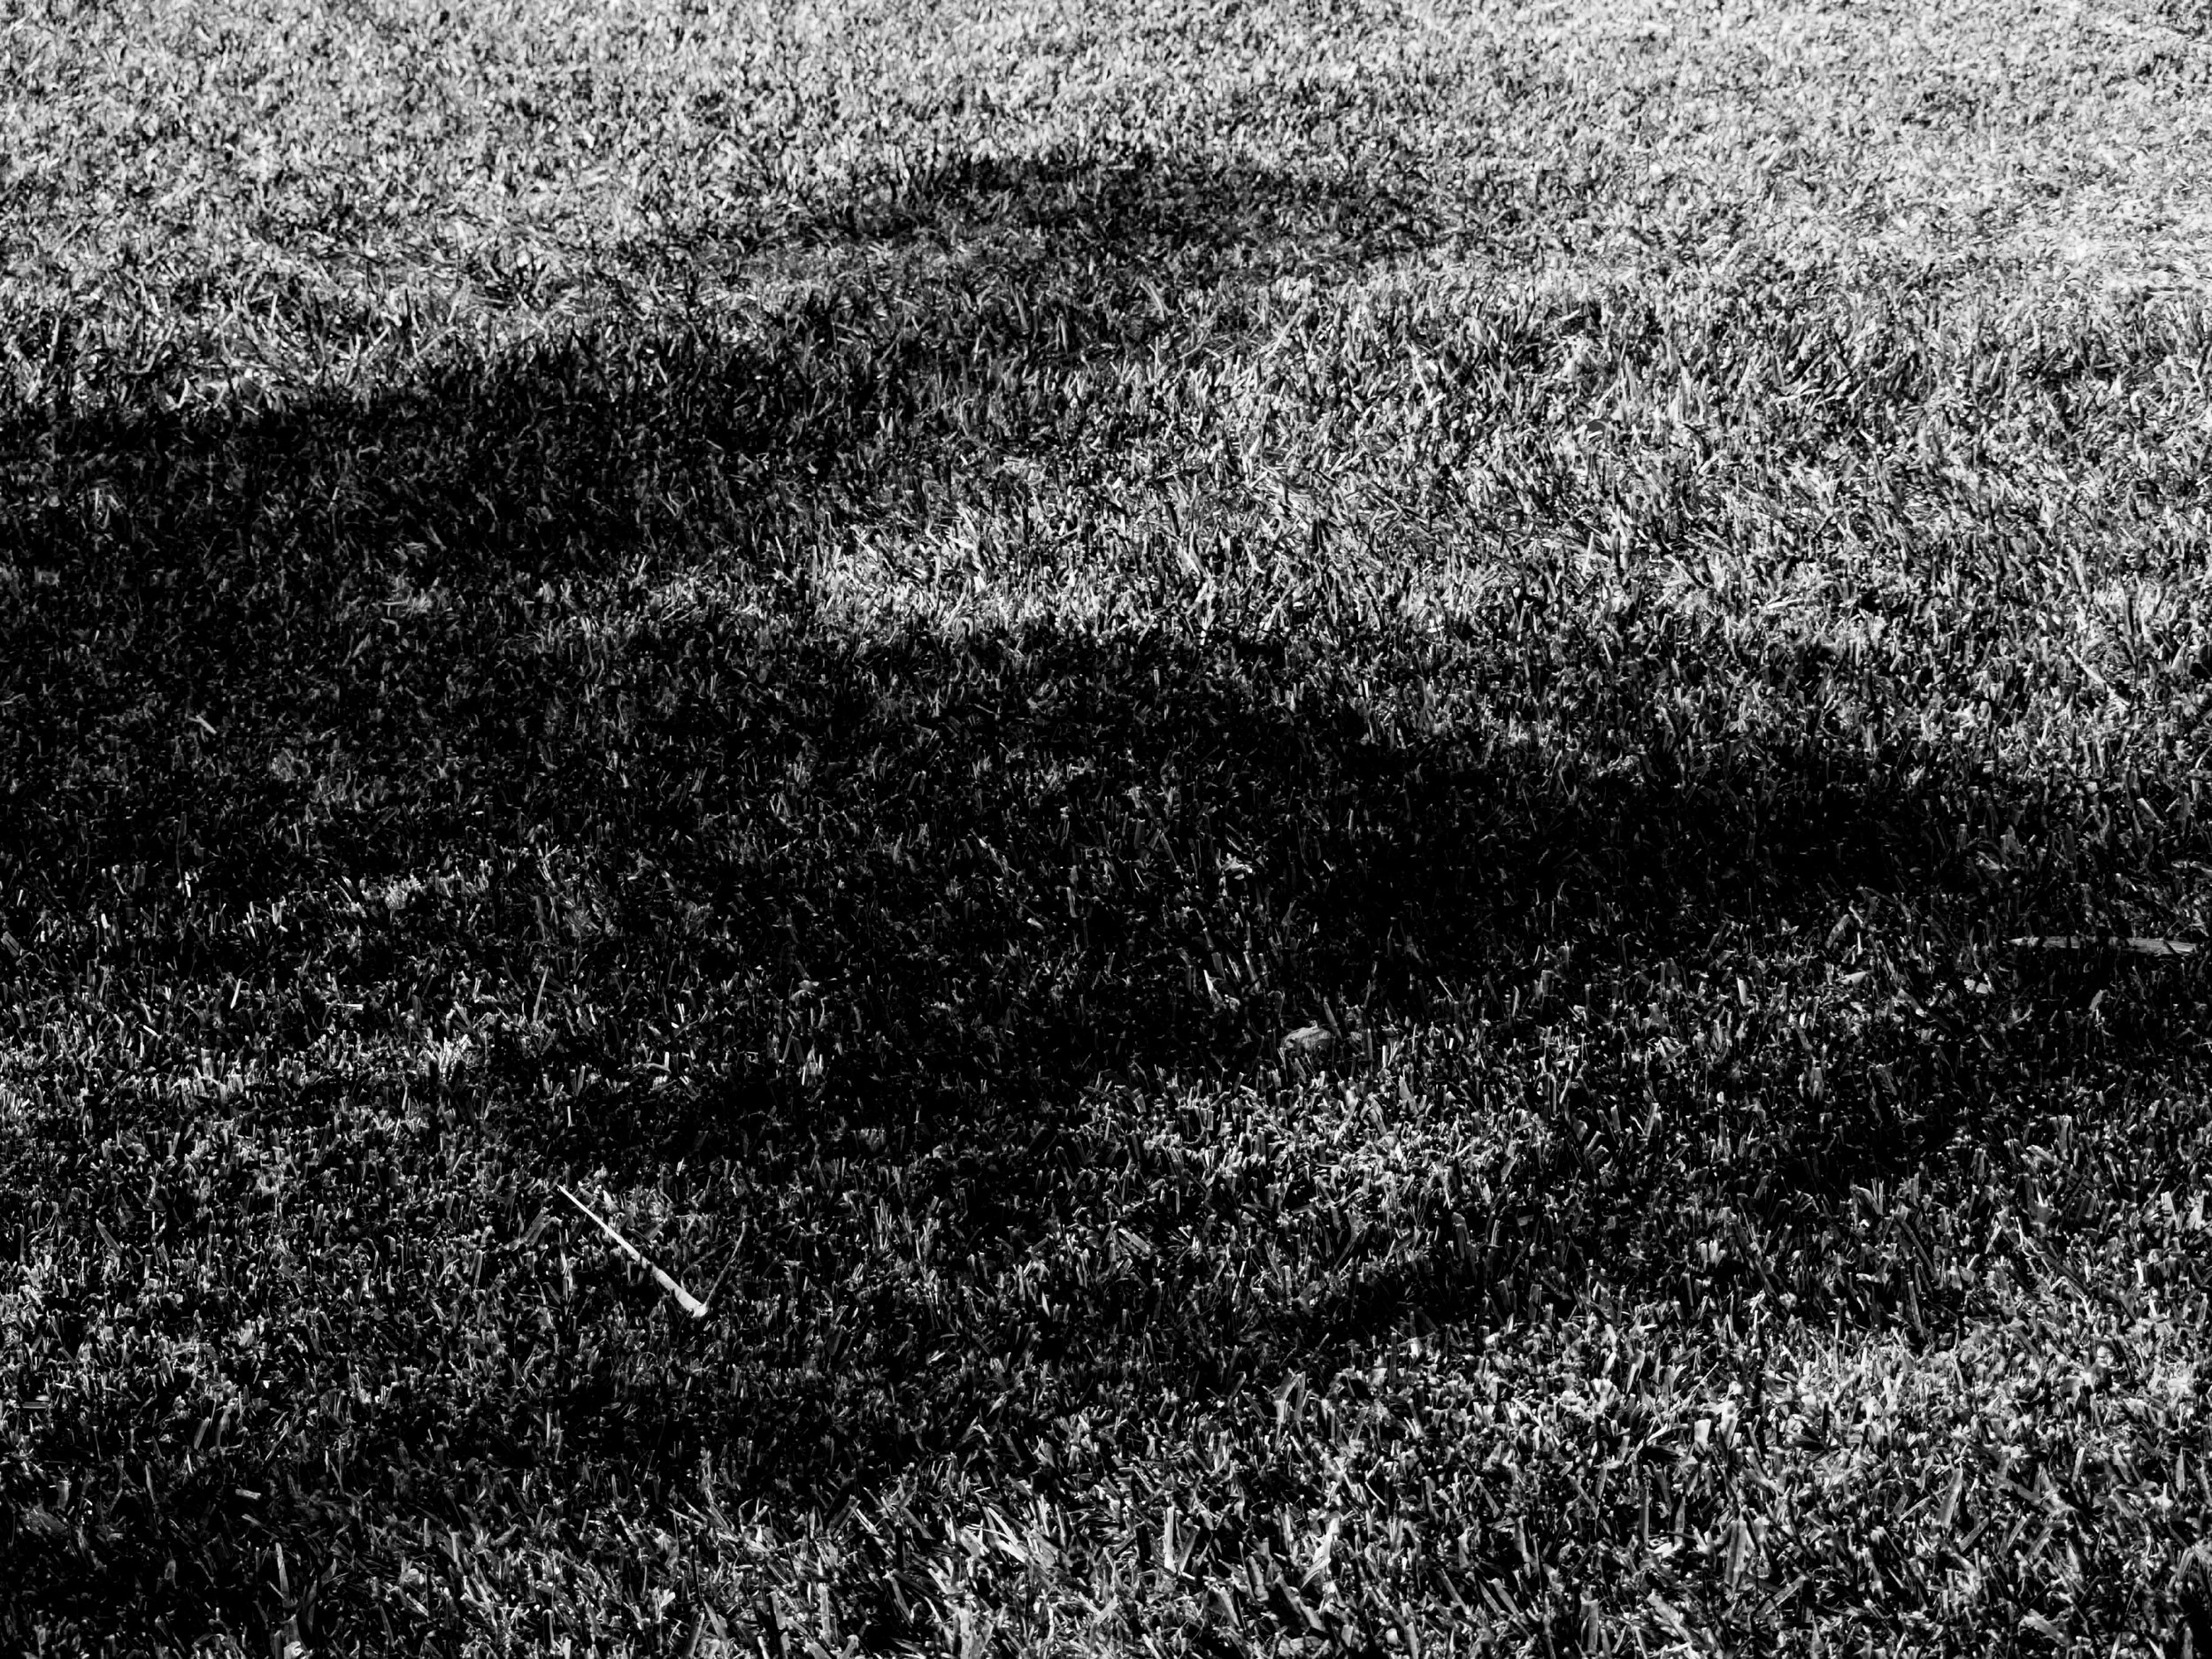 black_and_white_grass_photograph.jpg